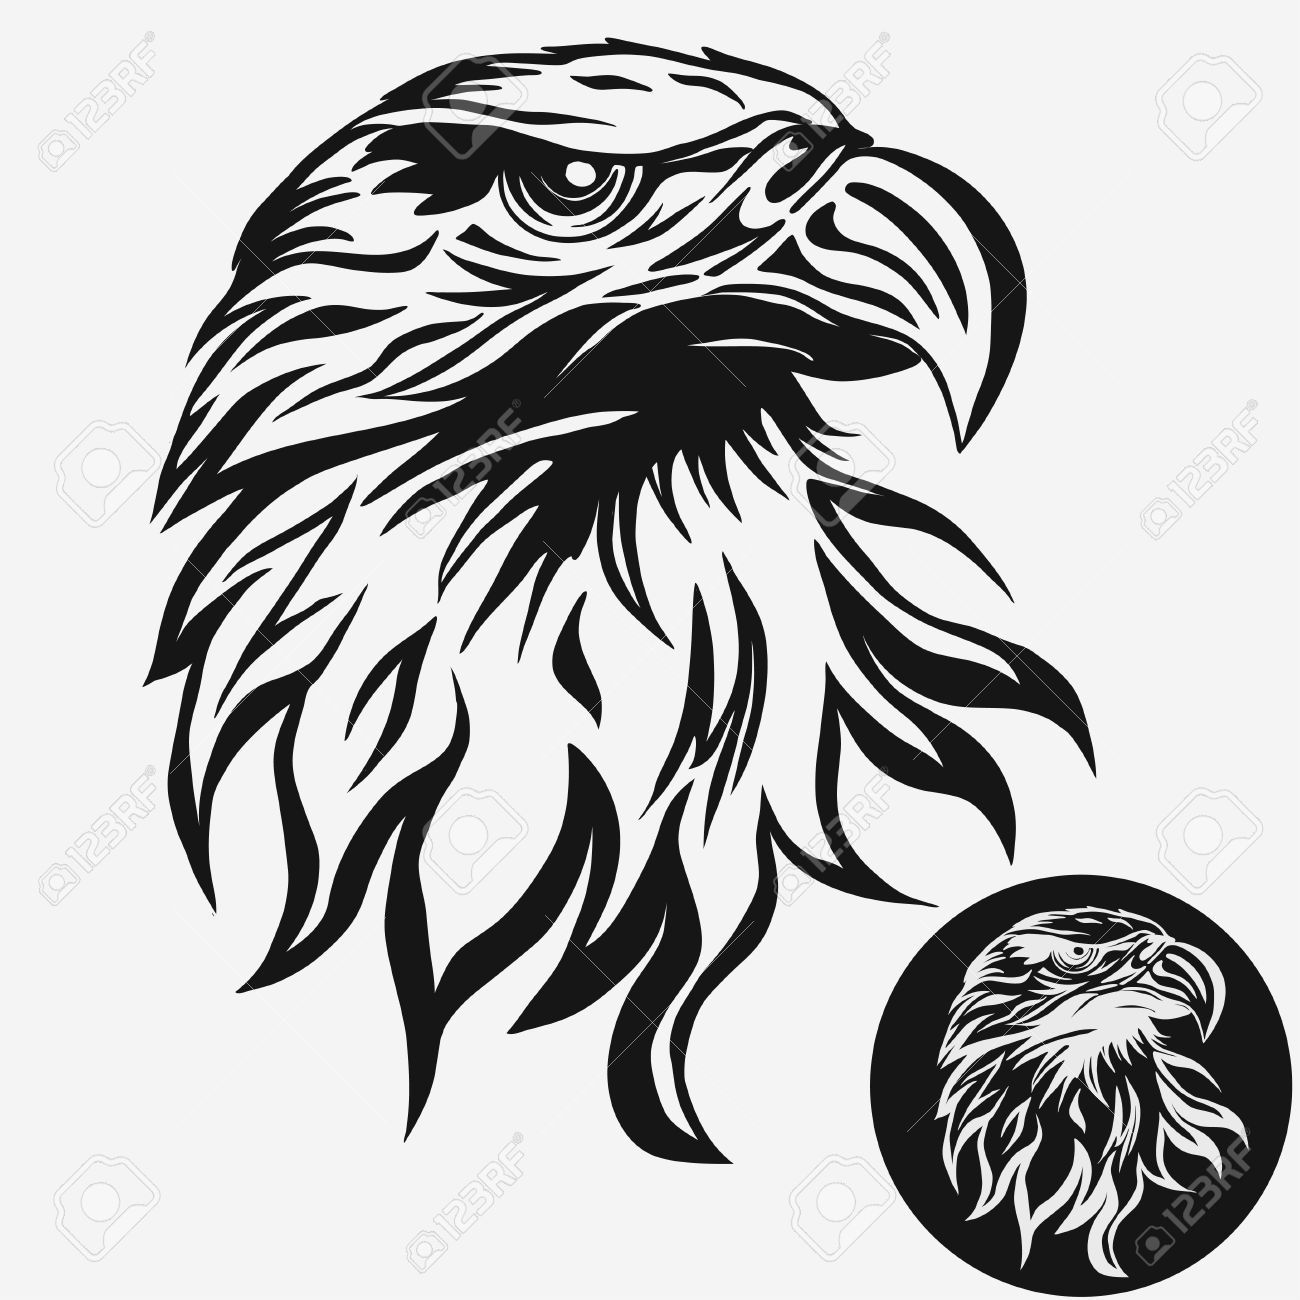 eagle head logo template hawk mascot graphic portrait of a rh 123rf com bald eagle vector black and white bald eagle vector art free